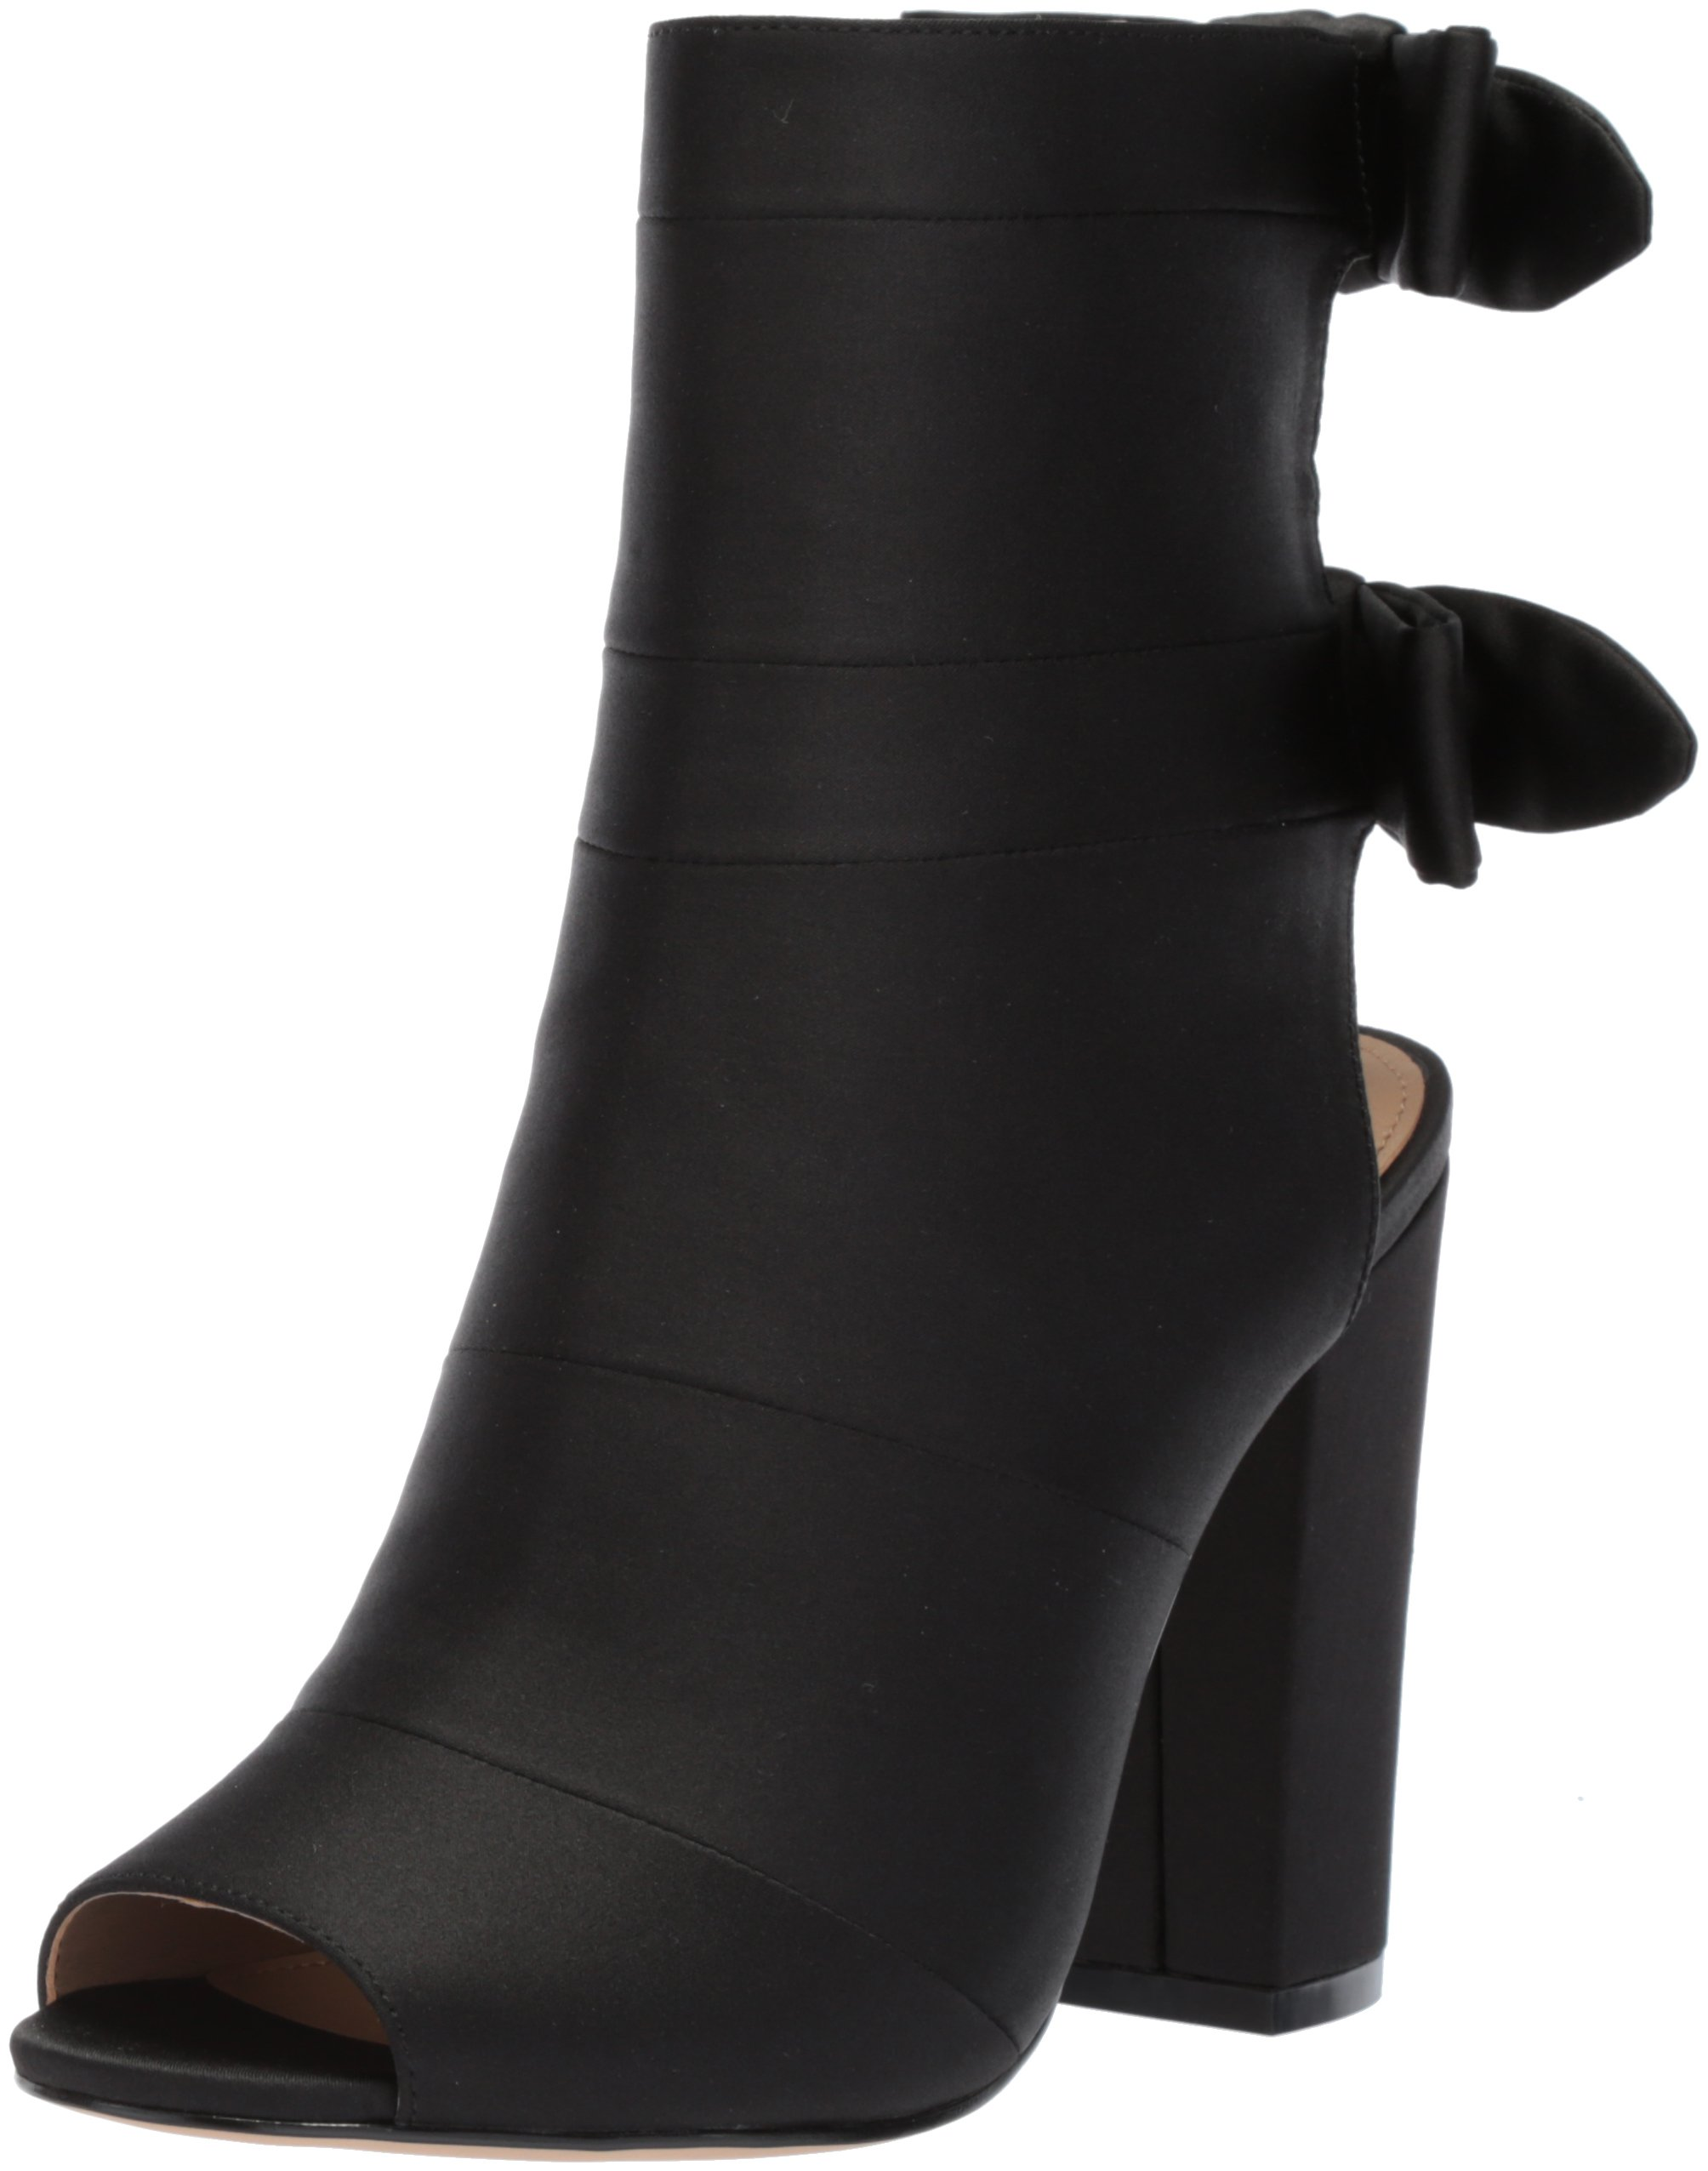 The Fix Women's Phoebe Open Toe Block Heel Bootie with Bow Detail Ankle Boot, Black Satin, 8.5 B US